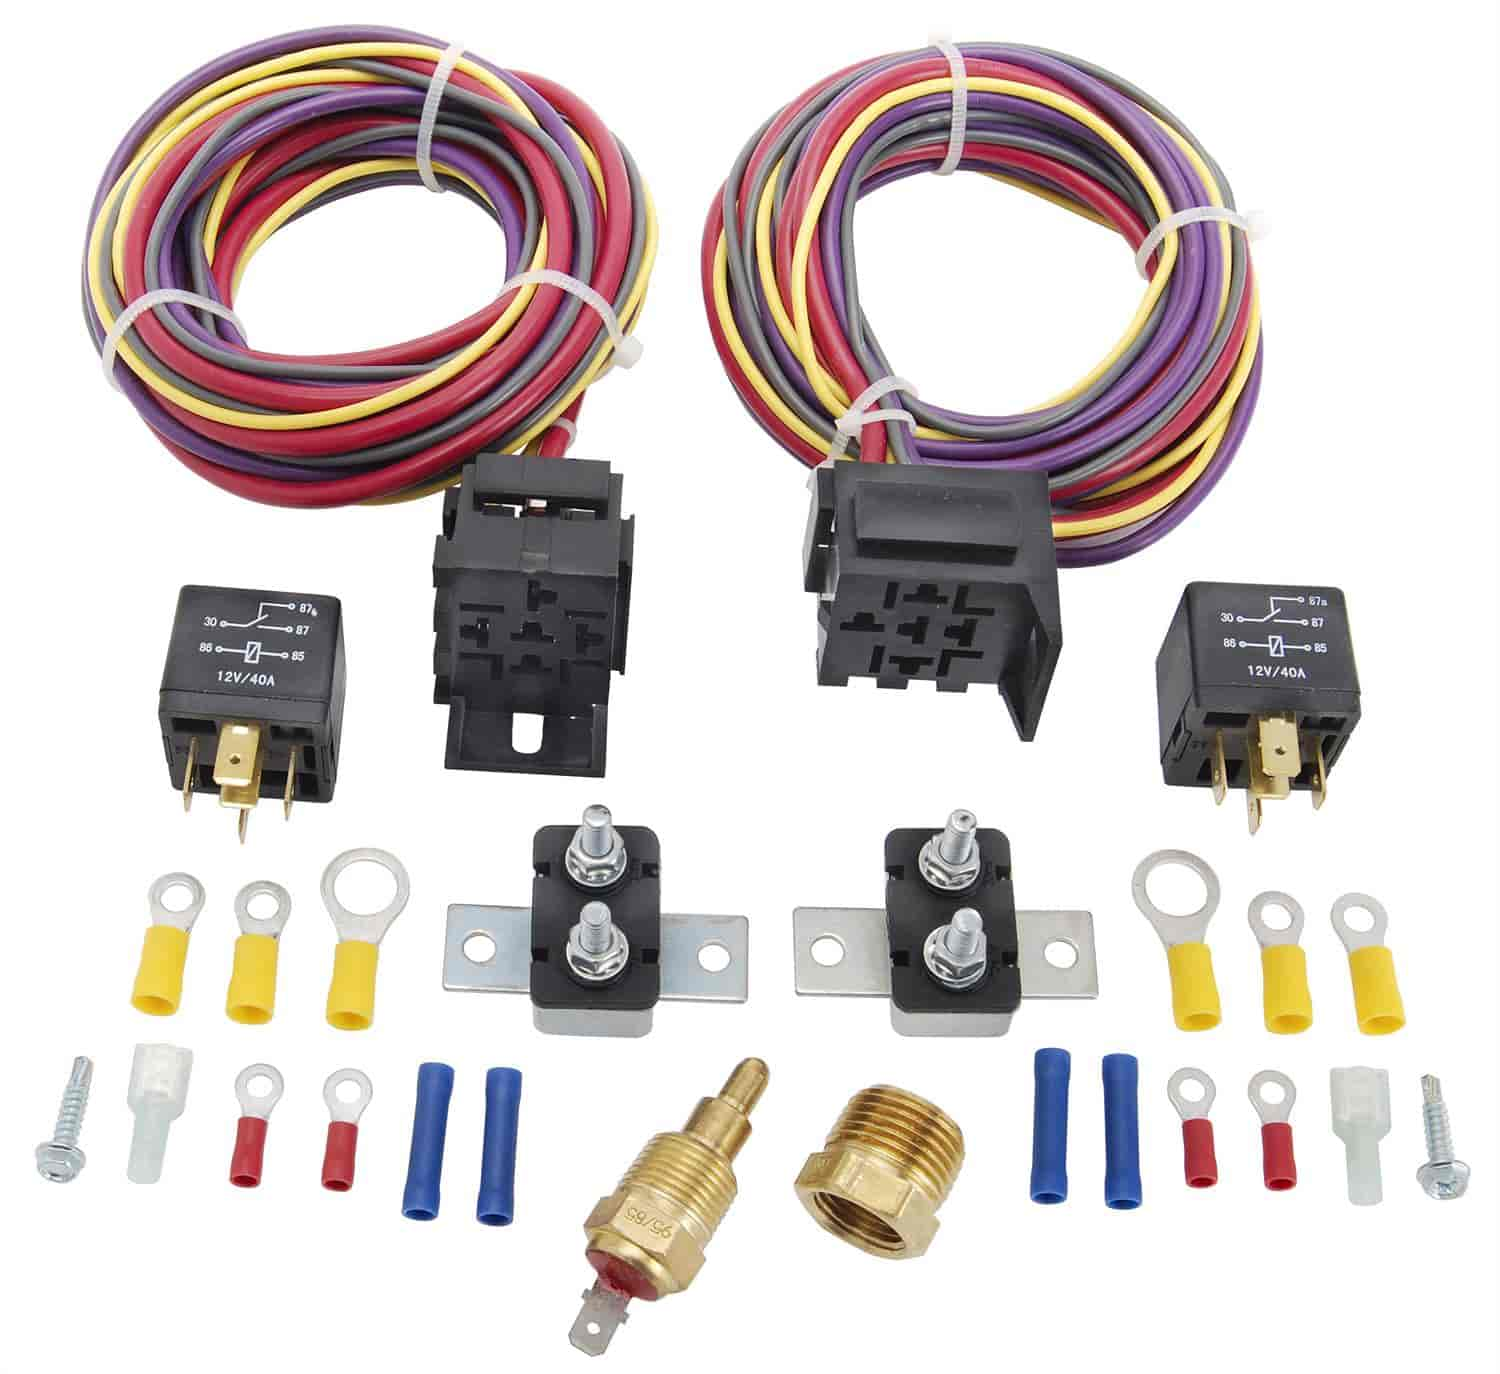 555 10571 jegs performance products 10571 dual fan wiring harness & relay jegs universal wiring harness at panicattacktreatment.co